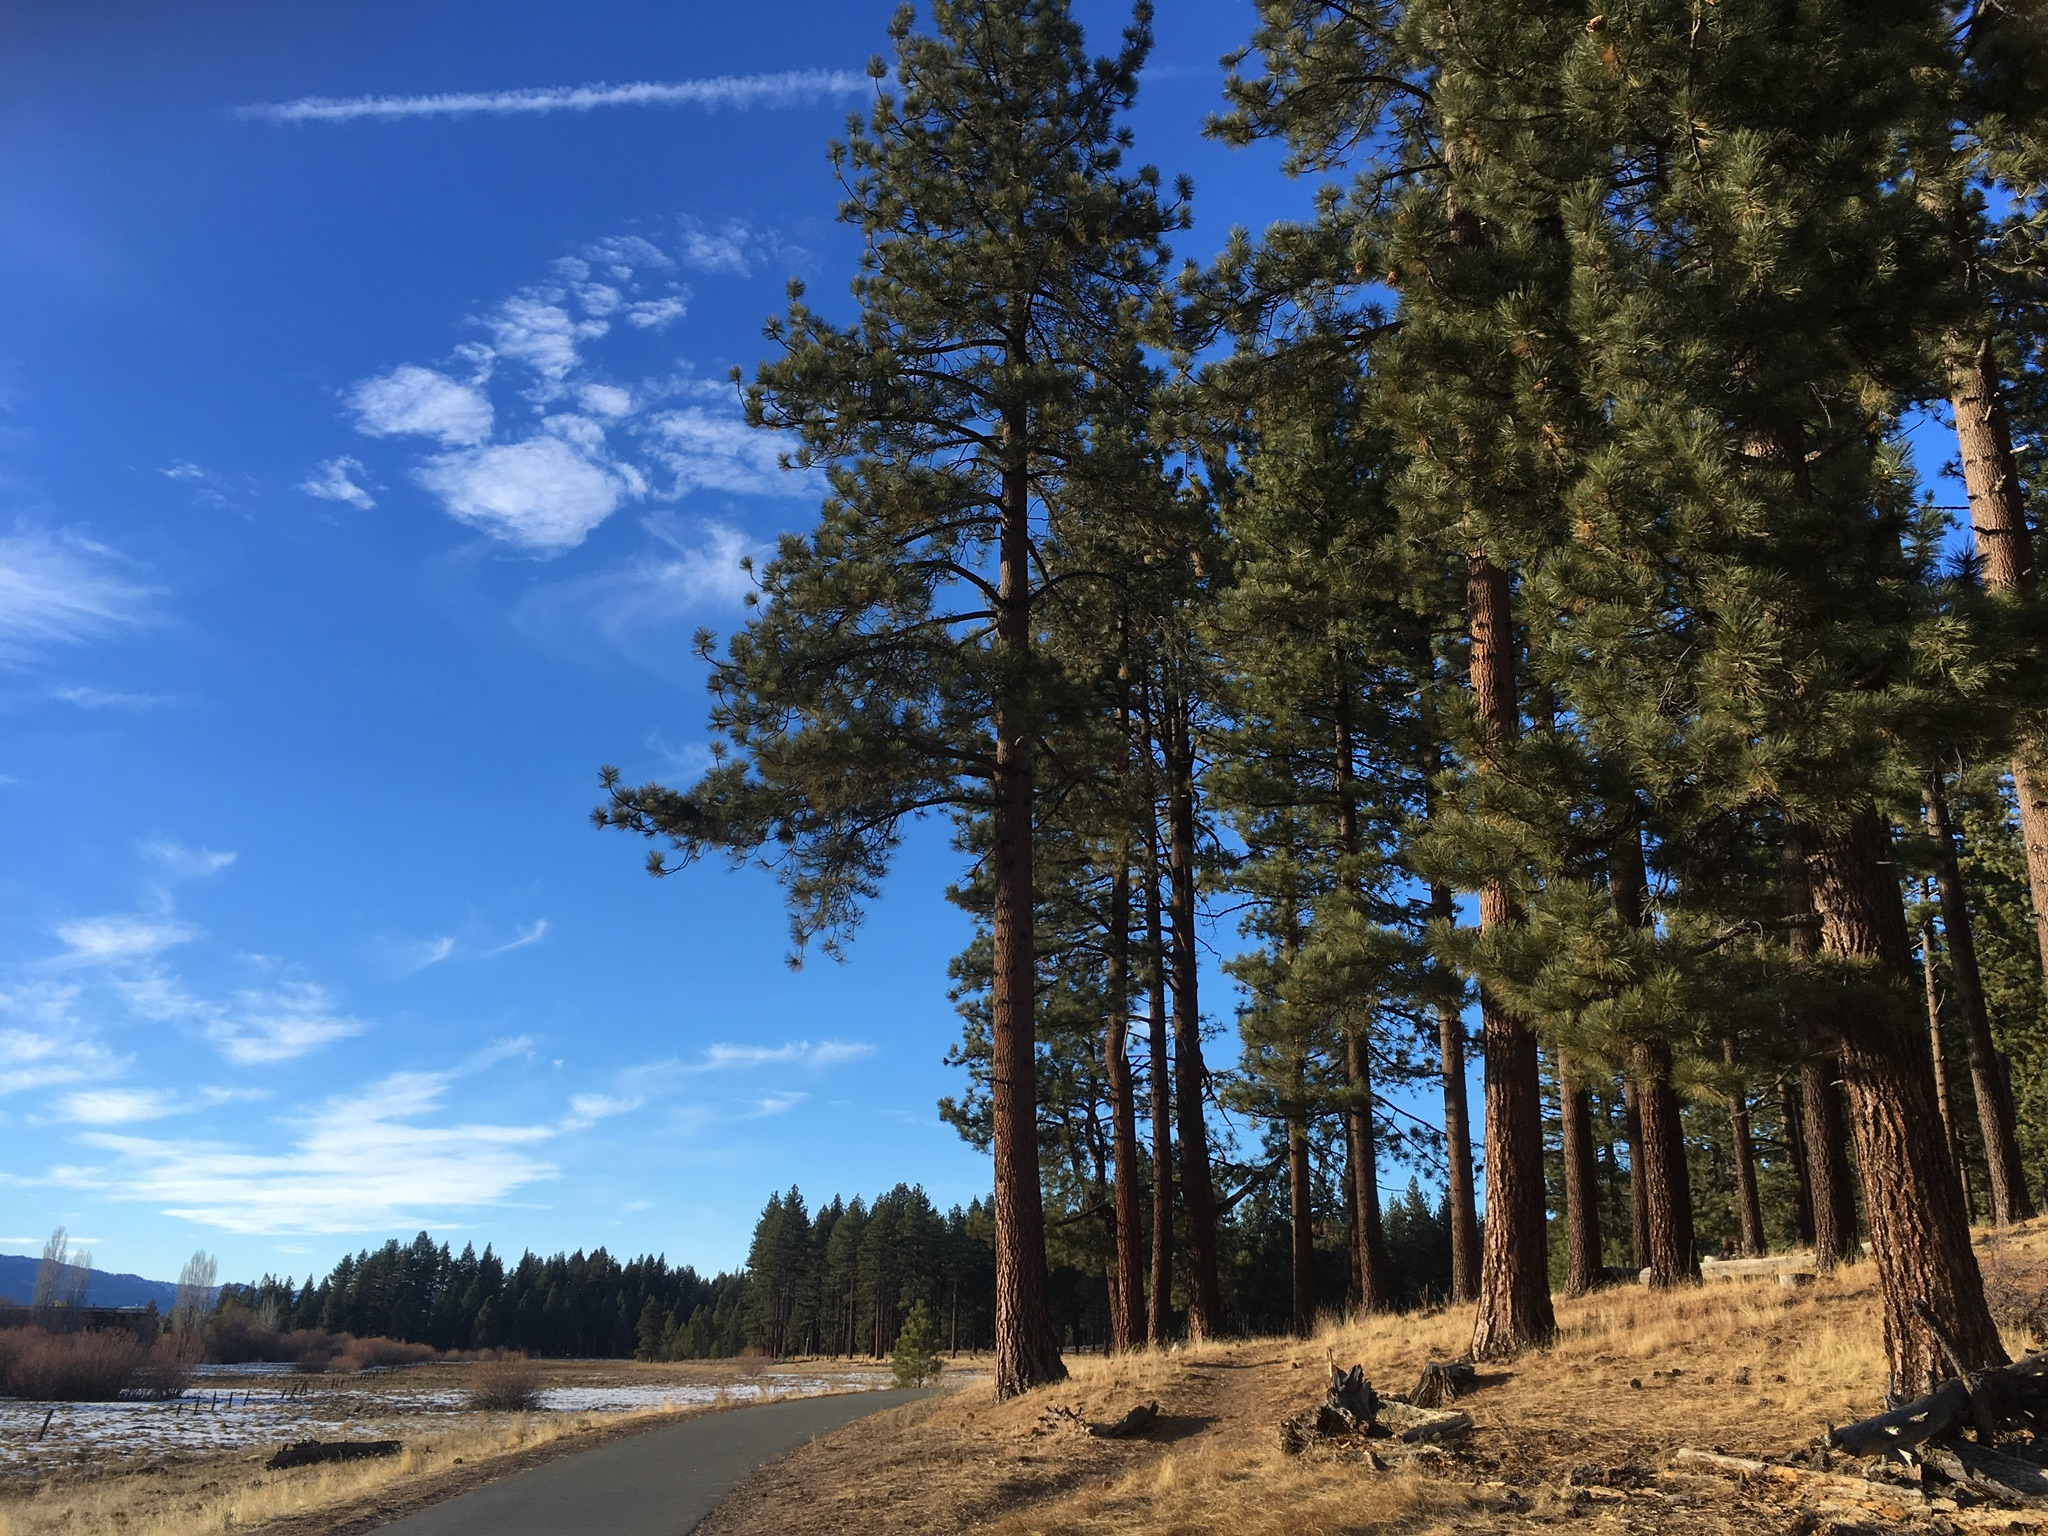 Blue sky and trees in Lake Tahoe